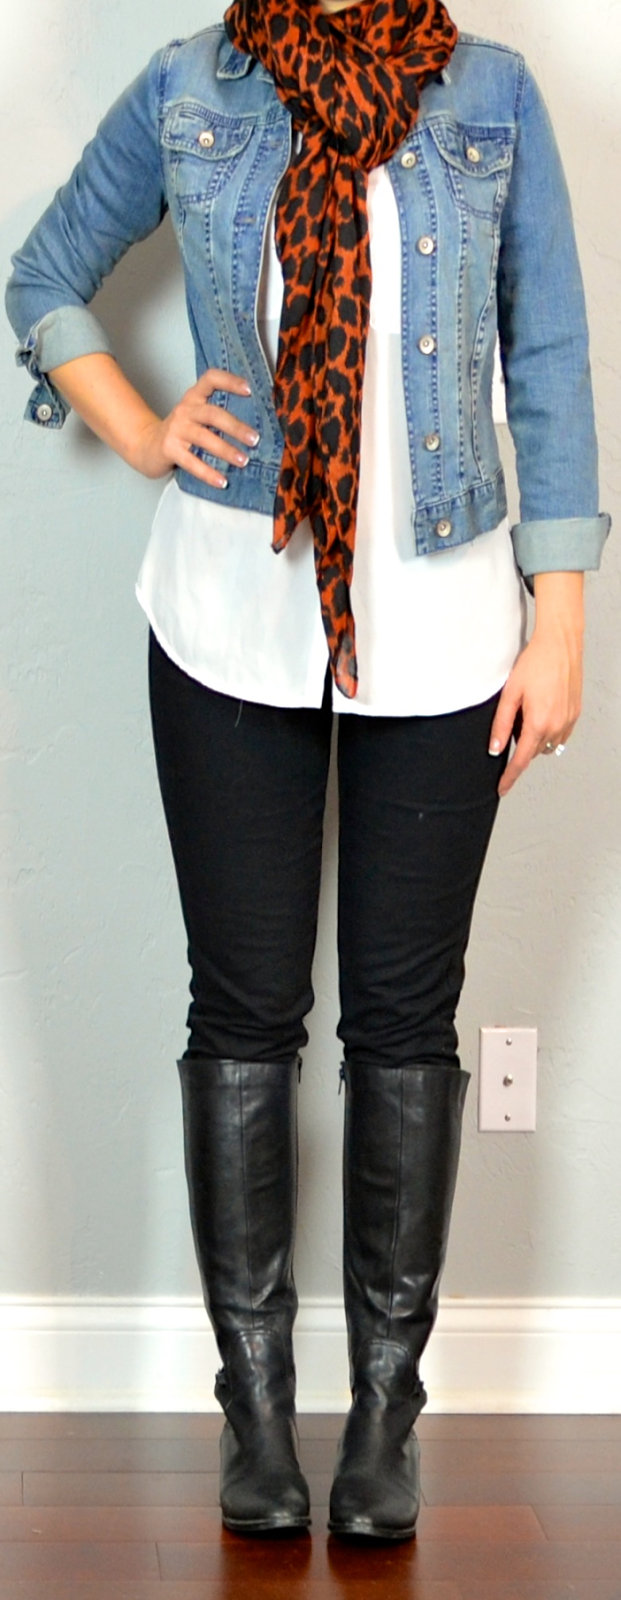 Outfit Post White Blouse Black Skinny Jeans Jean Jacket